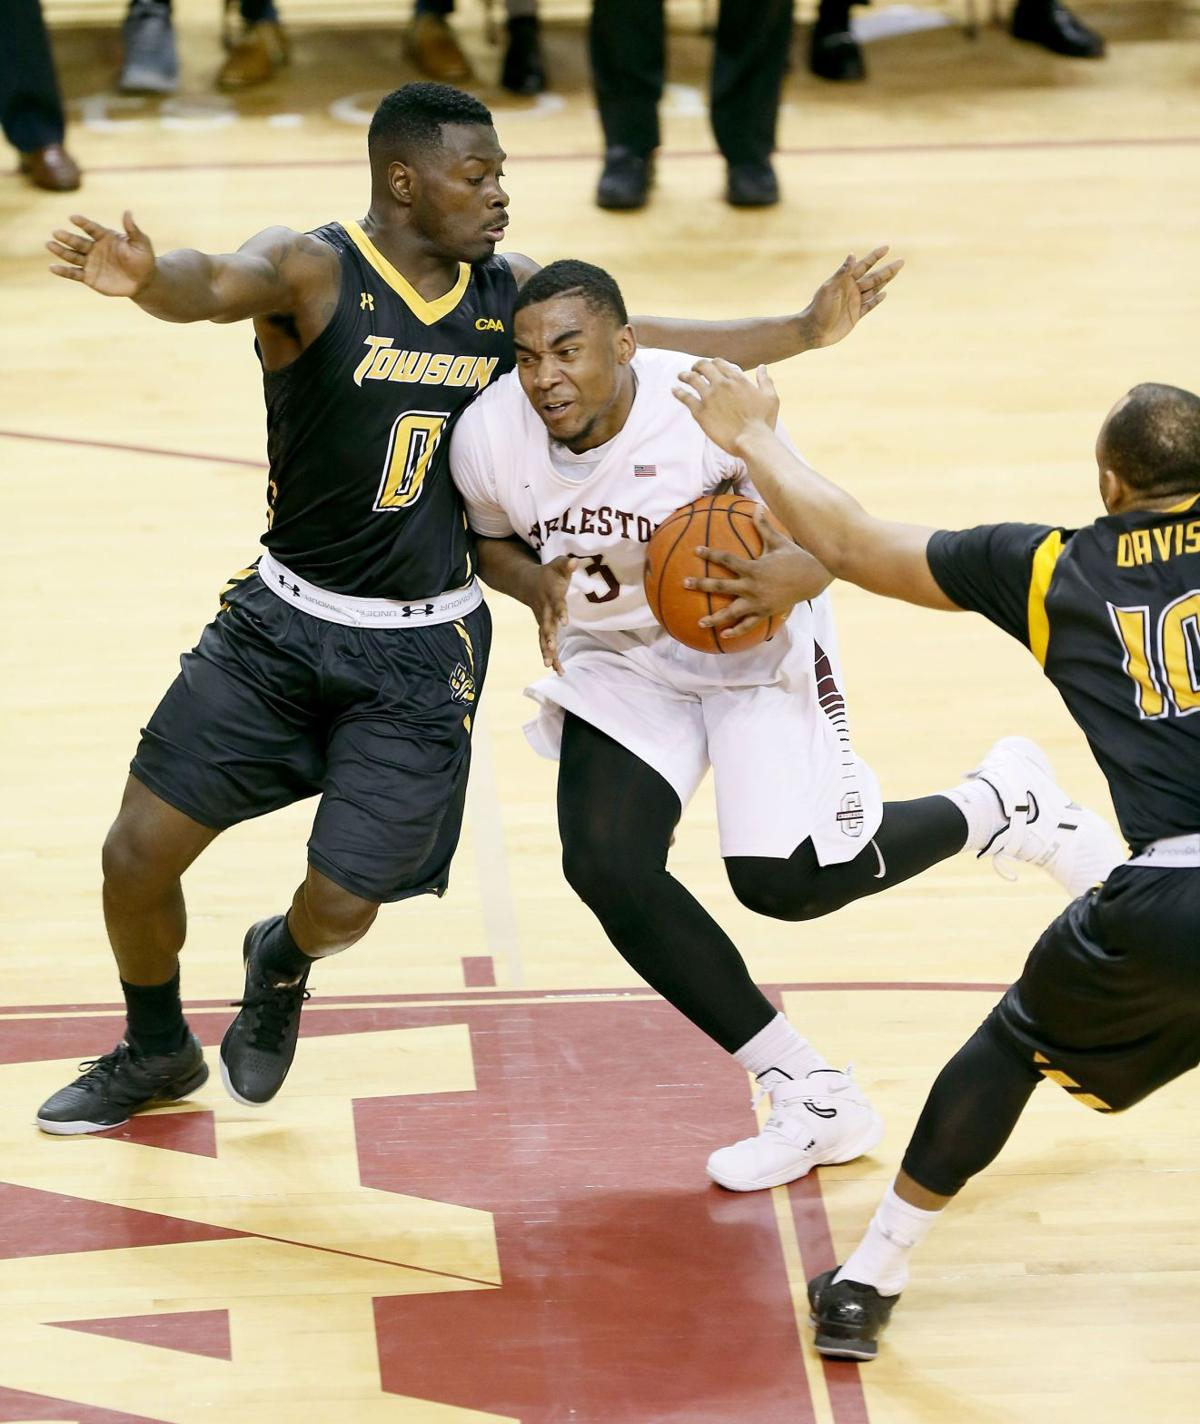 COUGARS DEN: CofC can't play to level of competition